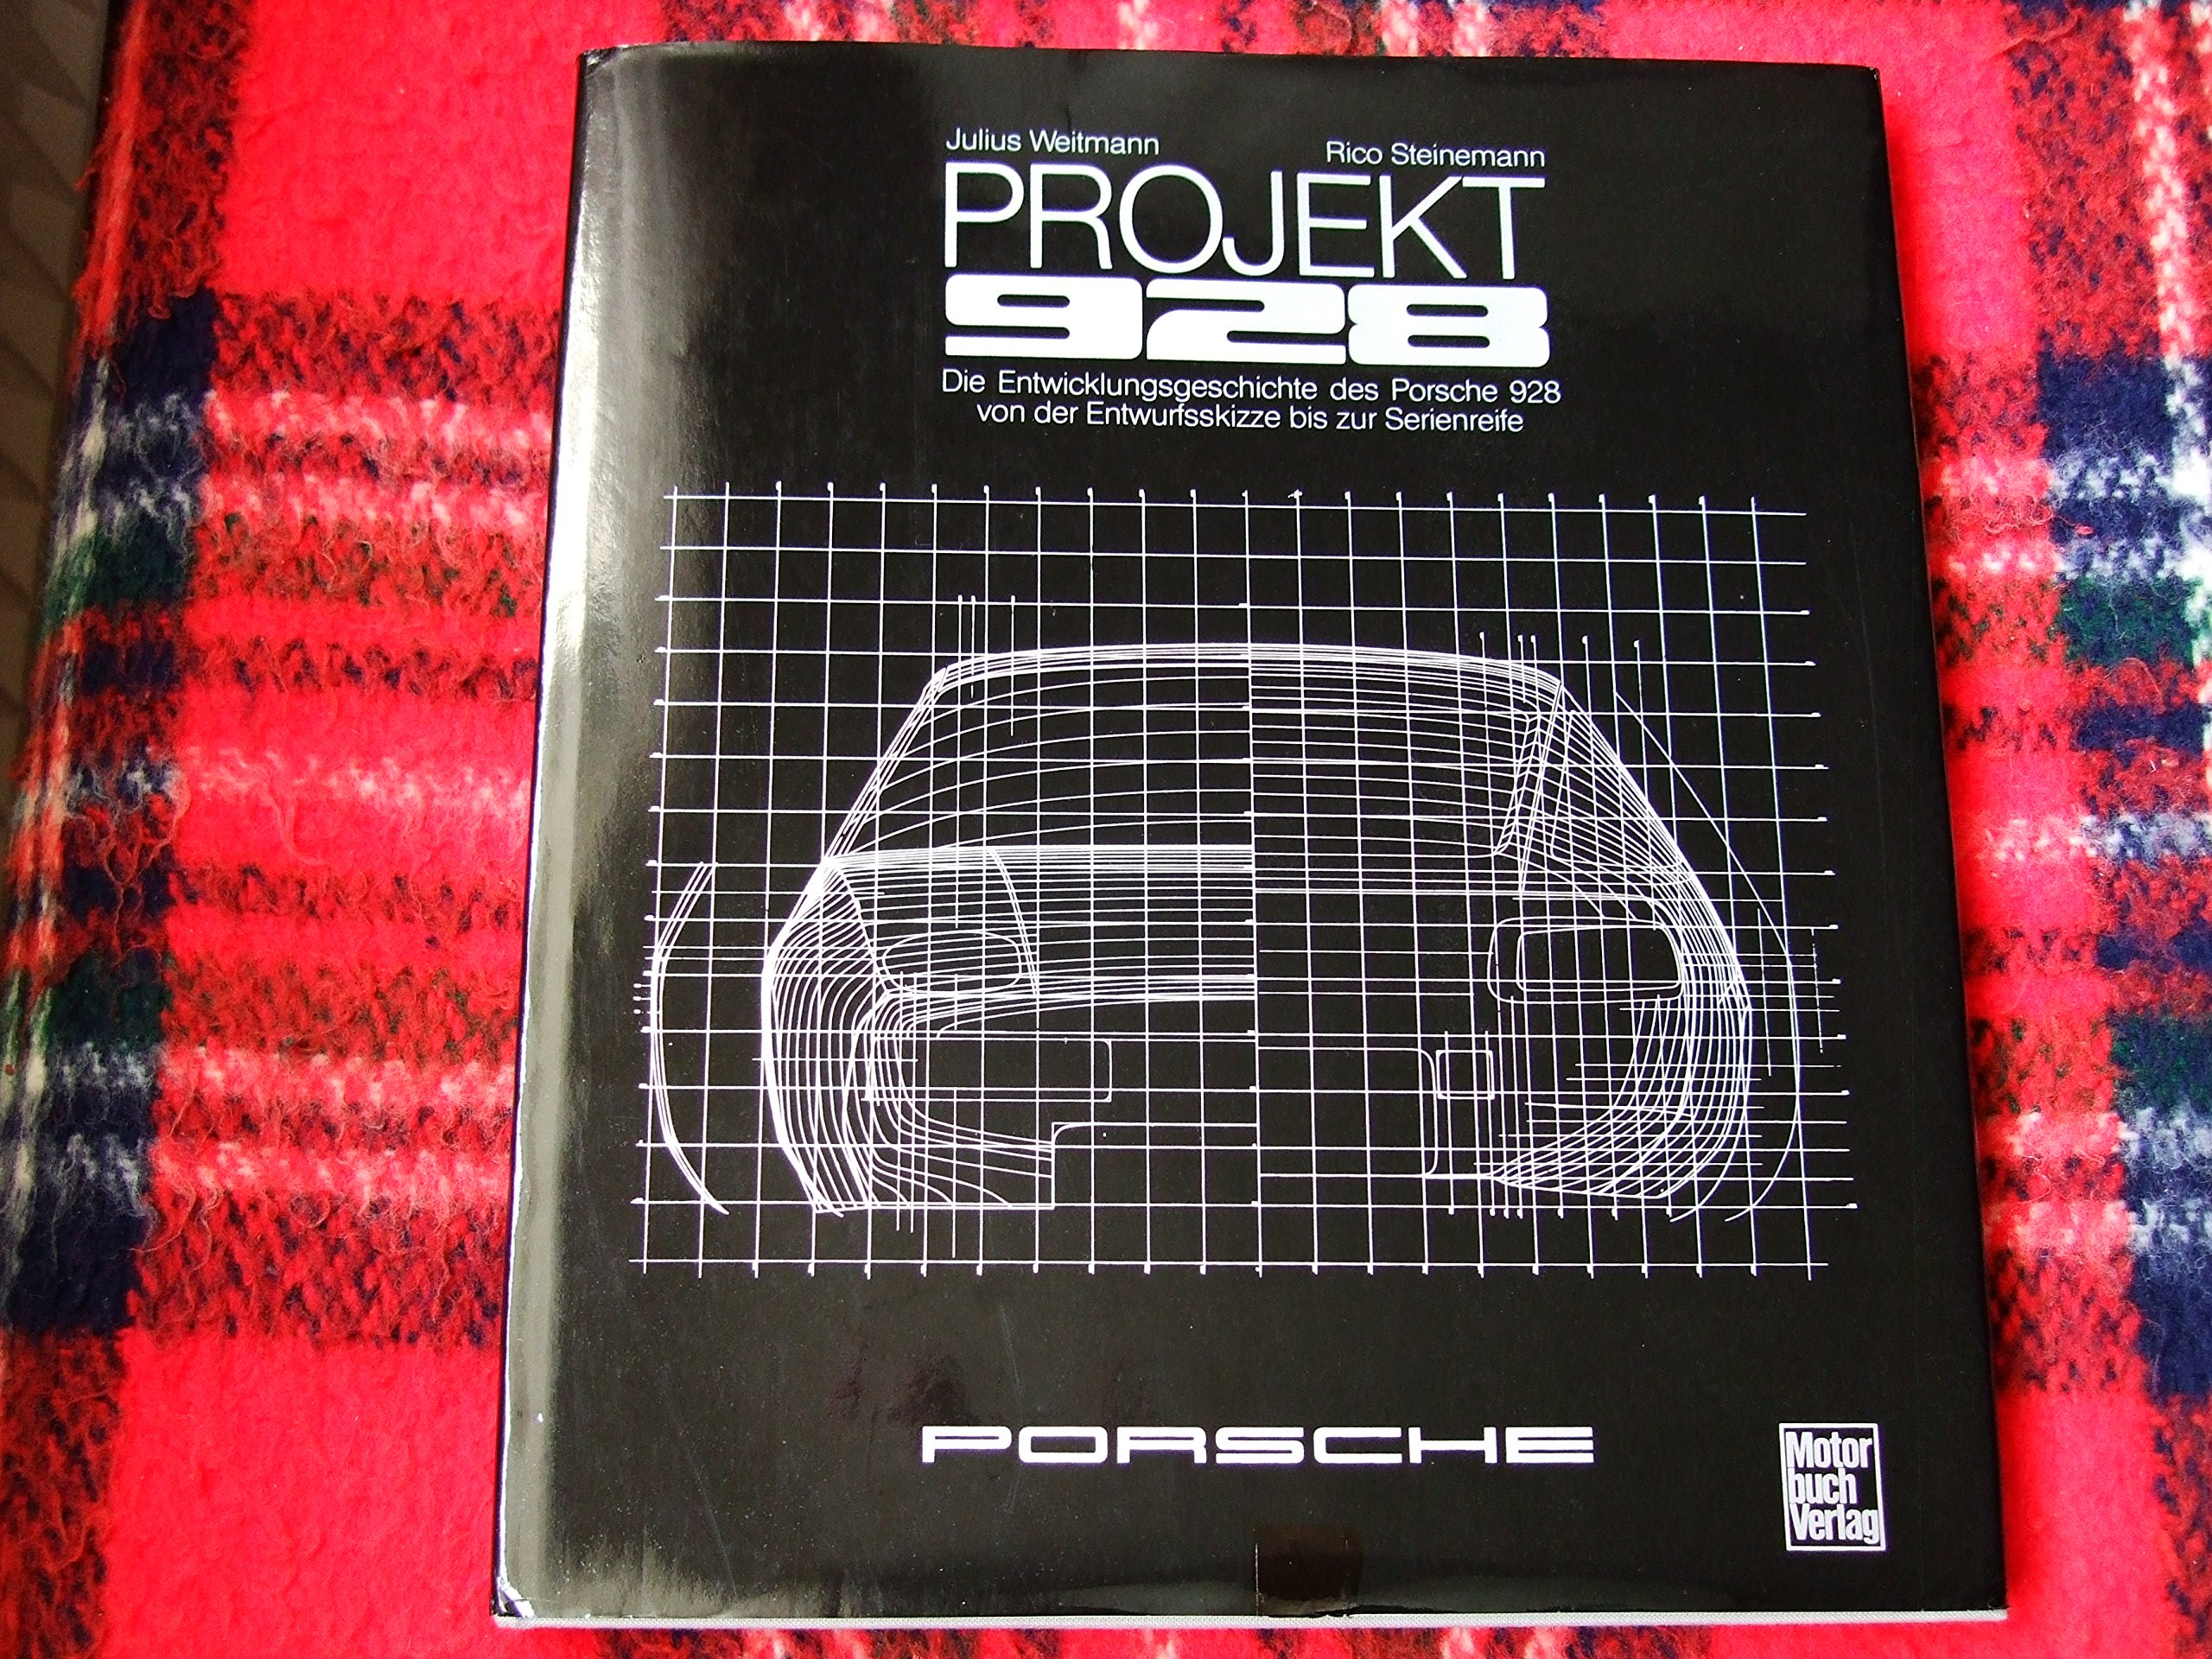 Project 928: A Development History of the Porsche 928 from First Sketch to Production